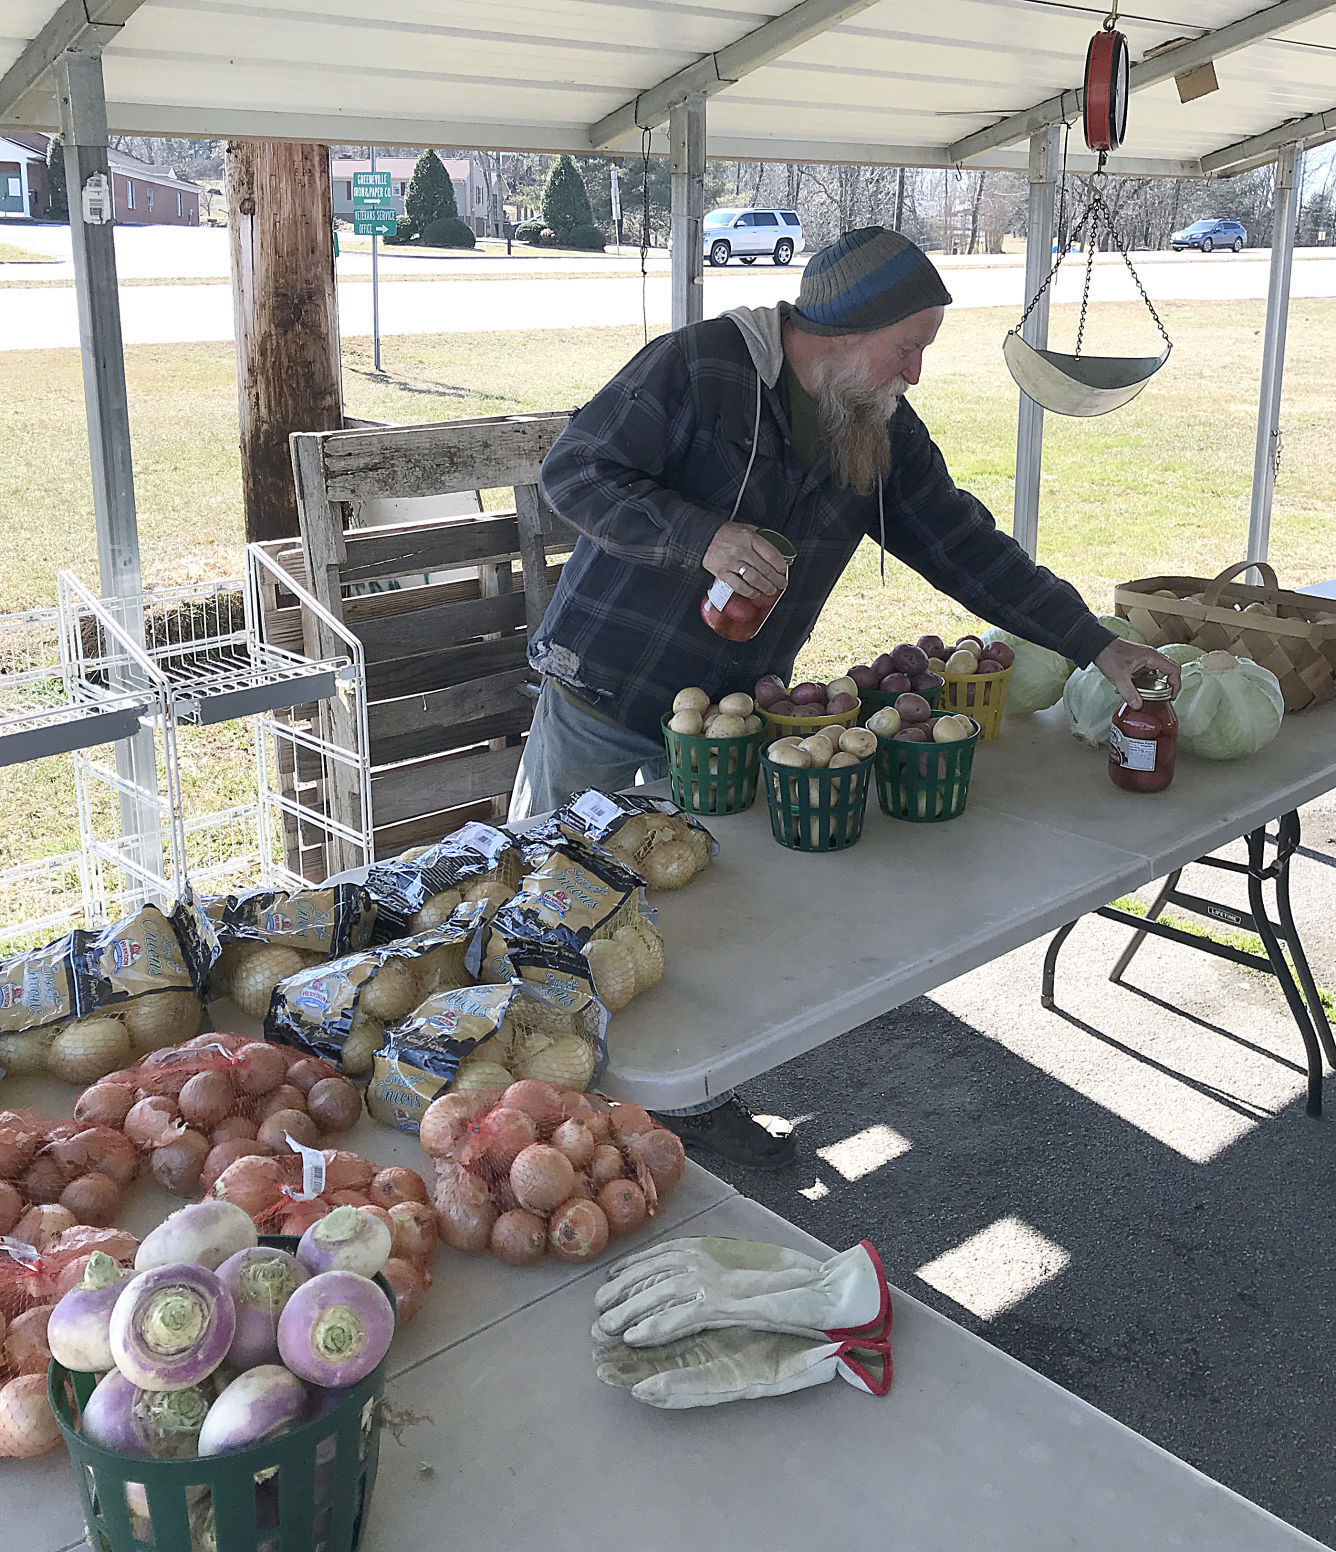 Marcus Key Puts Pickled Eggs Out At Produce Stand